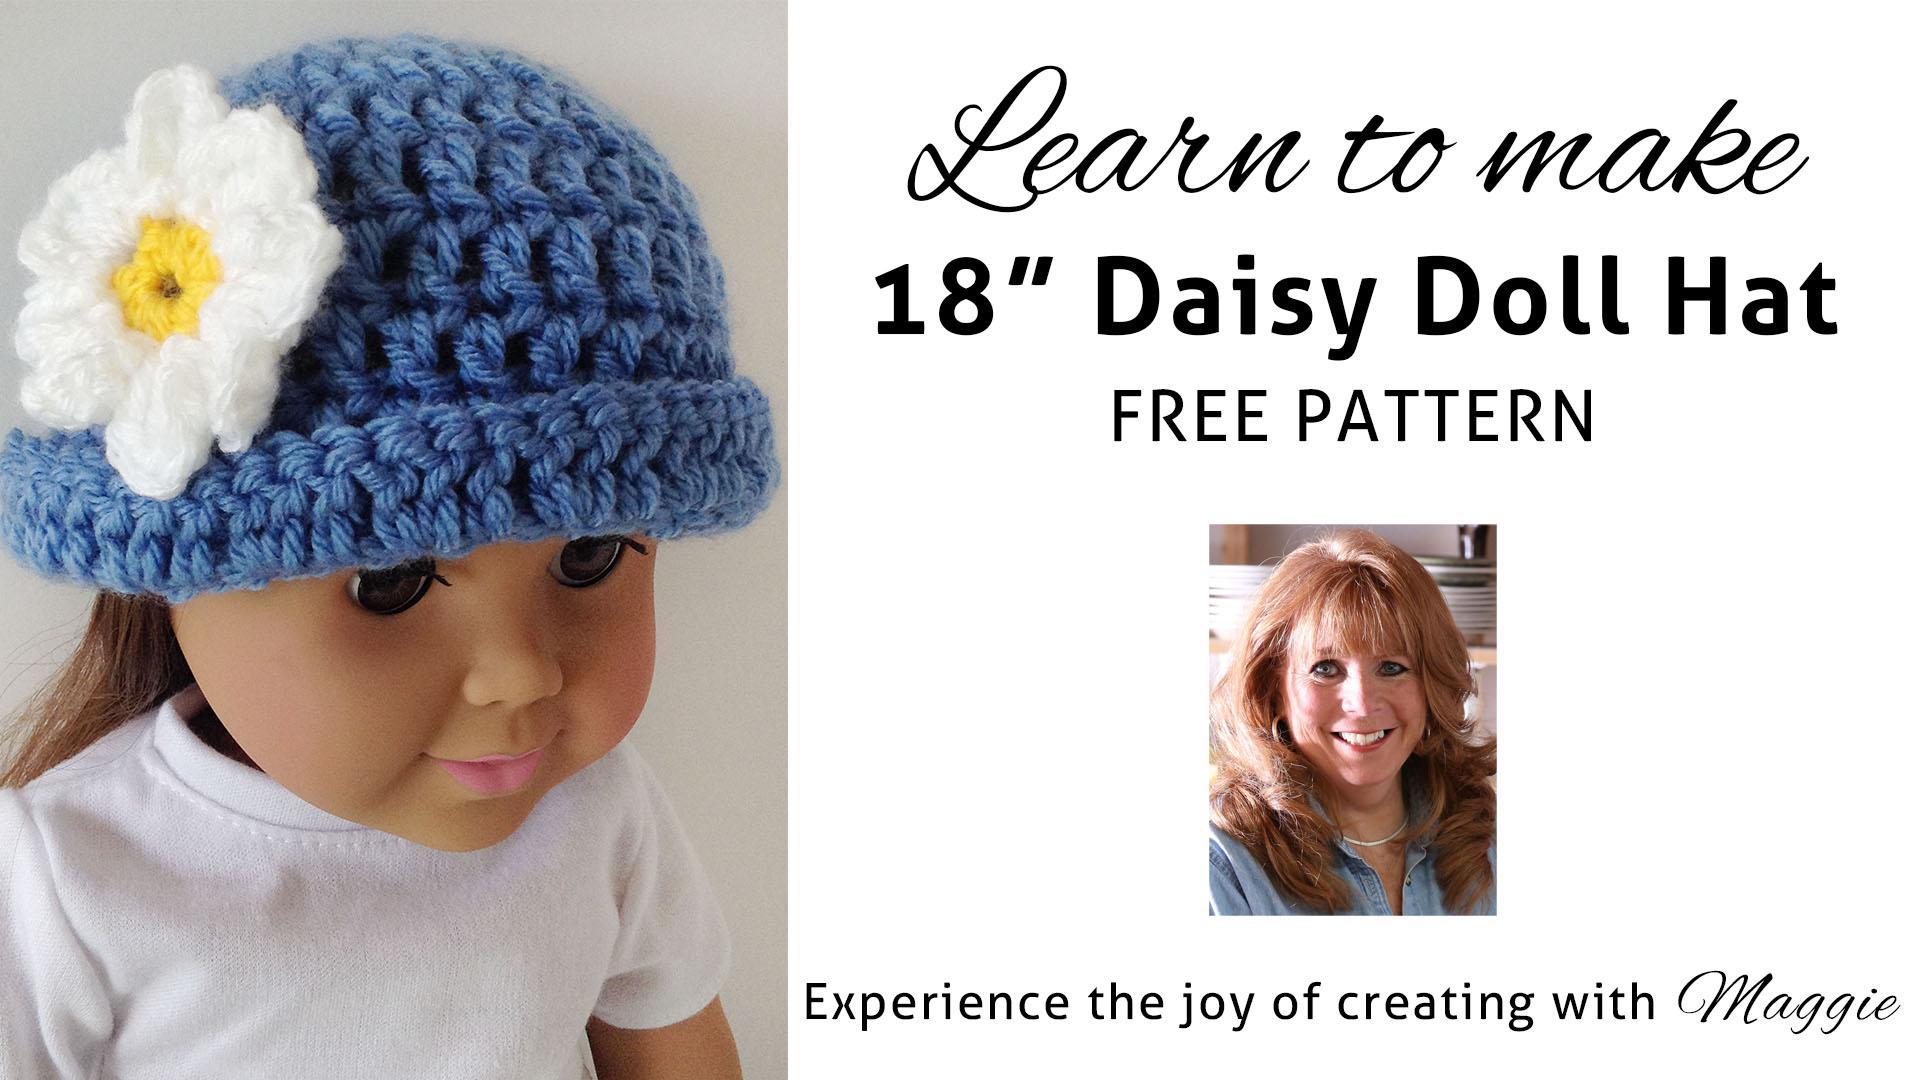 Free Knitting Patterns For Dolls Hats Free Crochet Doll Clothes Patterns For 18 Inch Dolls Doll Hat Free